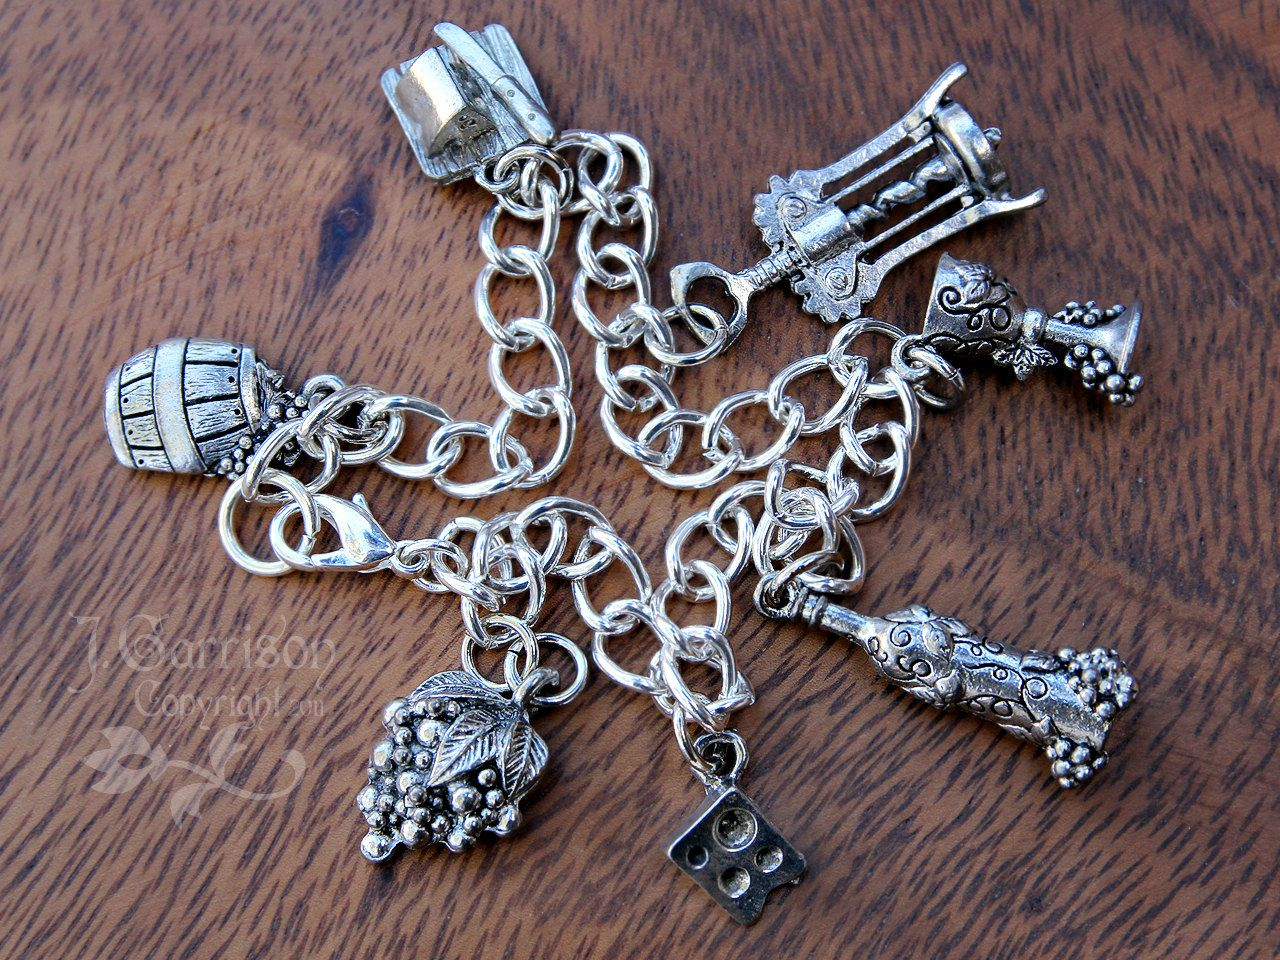 Wine & Cheese silver charm bracelet - cheese, wine, grapes, corkscrew, wine glass, barrel, bottle - on a chunky chain. $32.00, via Etsy.